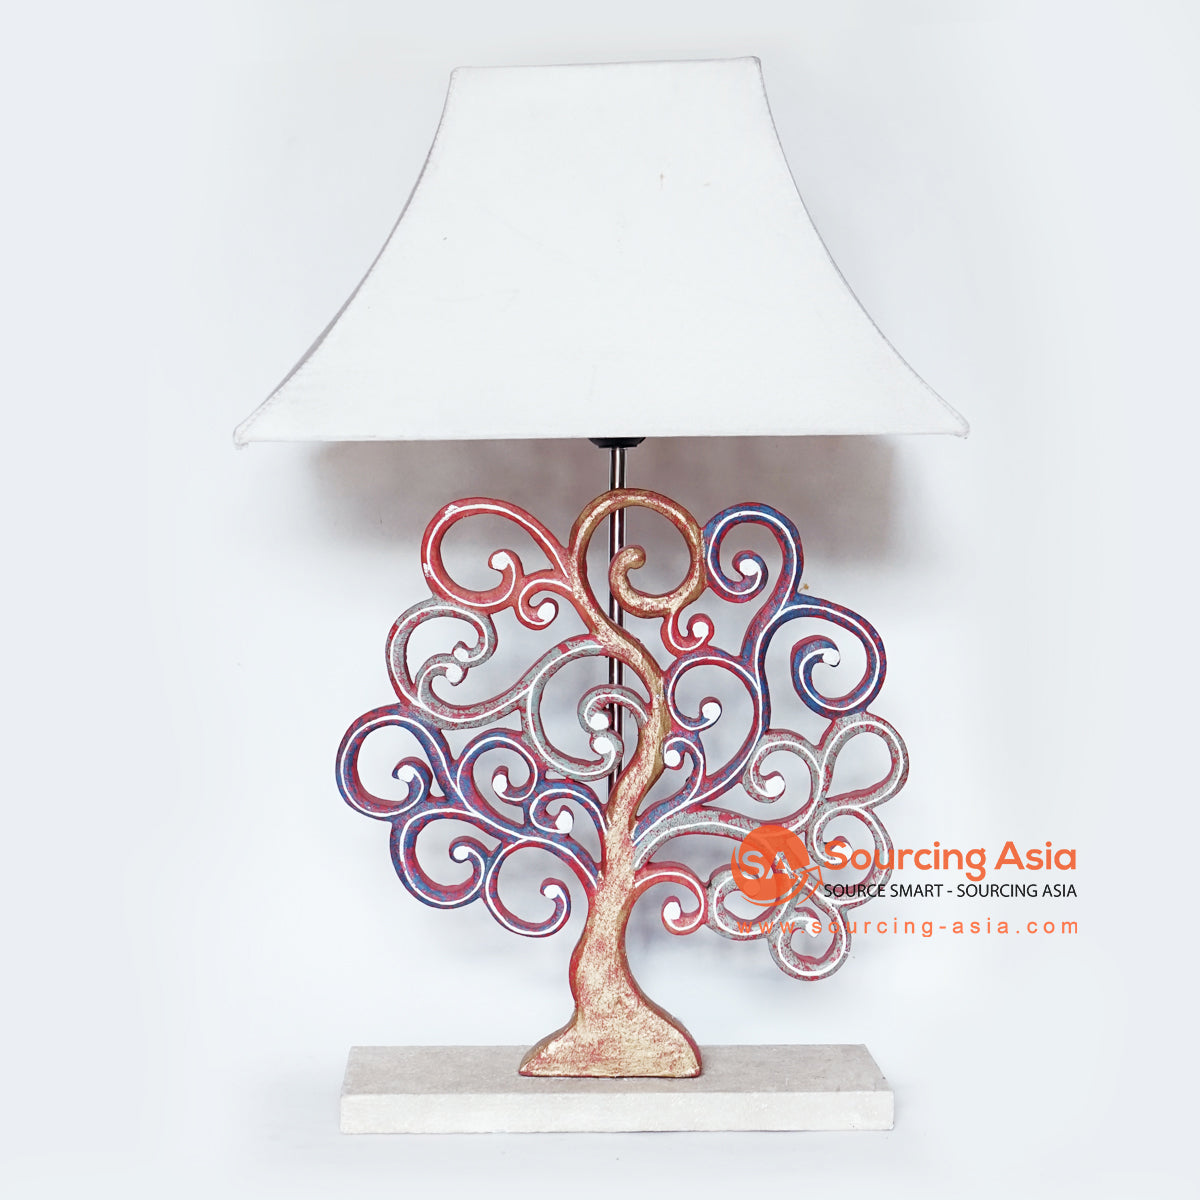 MANC041 TABLE LAMP WITH TREE DECORATION AND WHITE LAMP SHADE